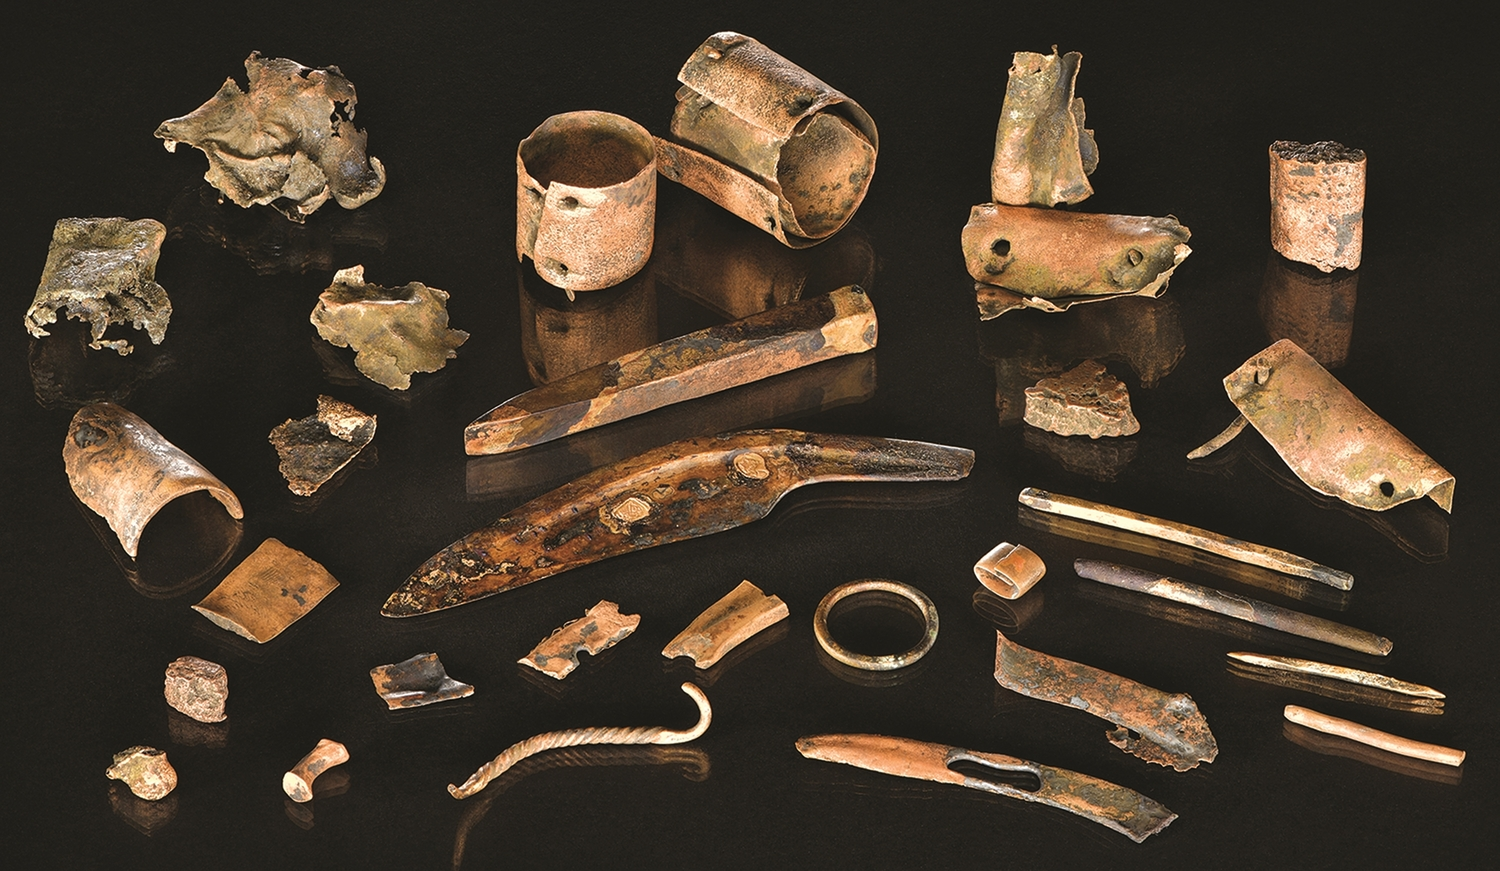 This collection of objects was found by divers in the Tollense river and is probably the contents of a personal pouch of a warrior who died 3,300 years ago on the battlefield.